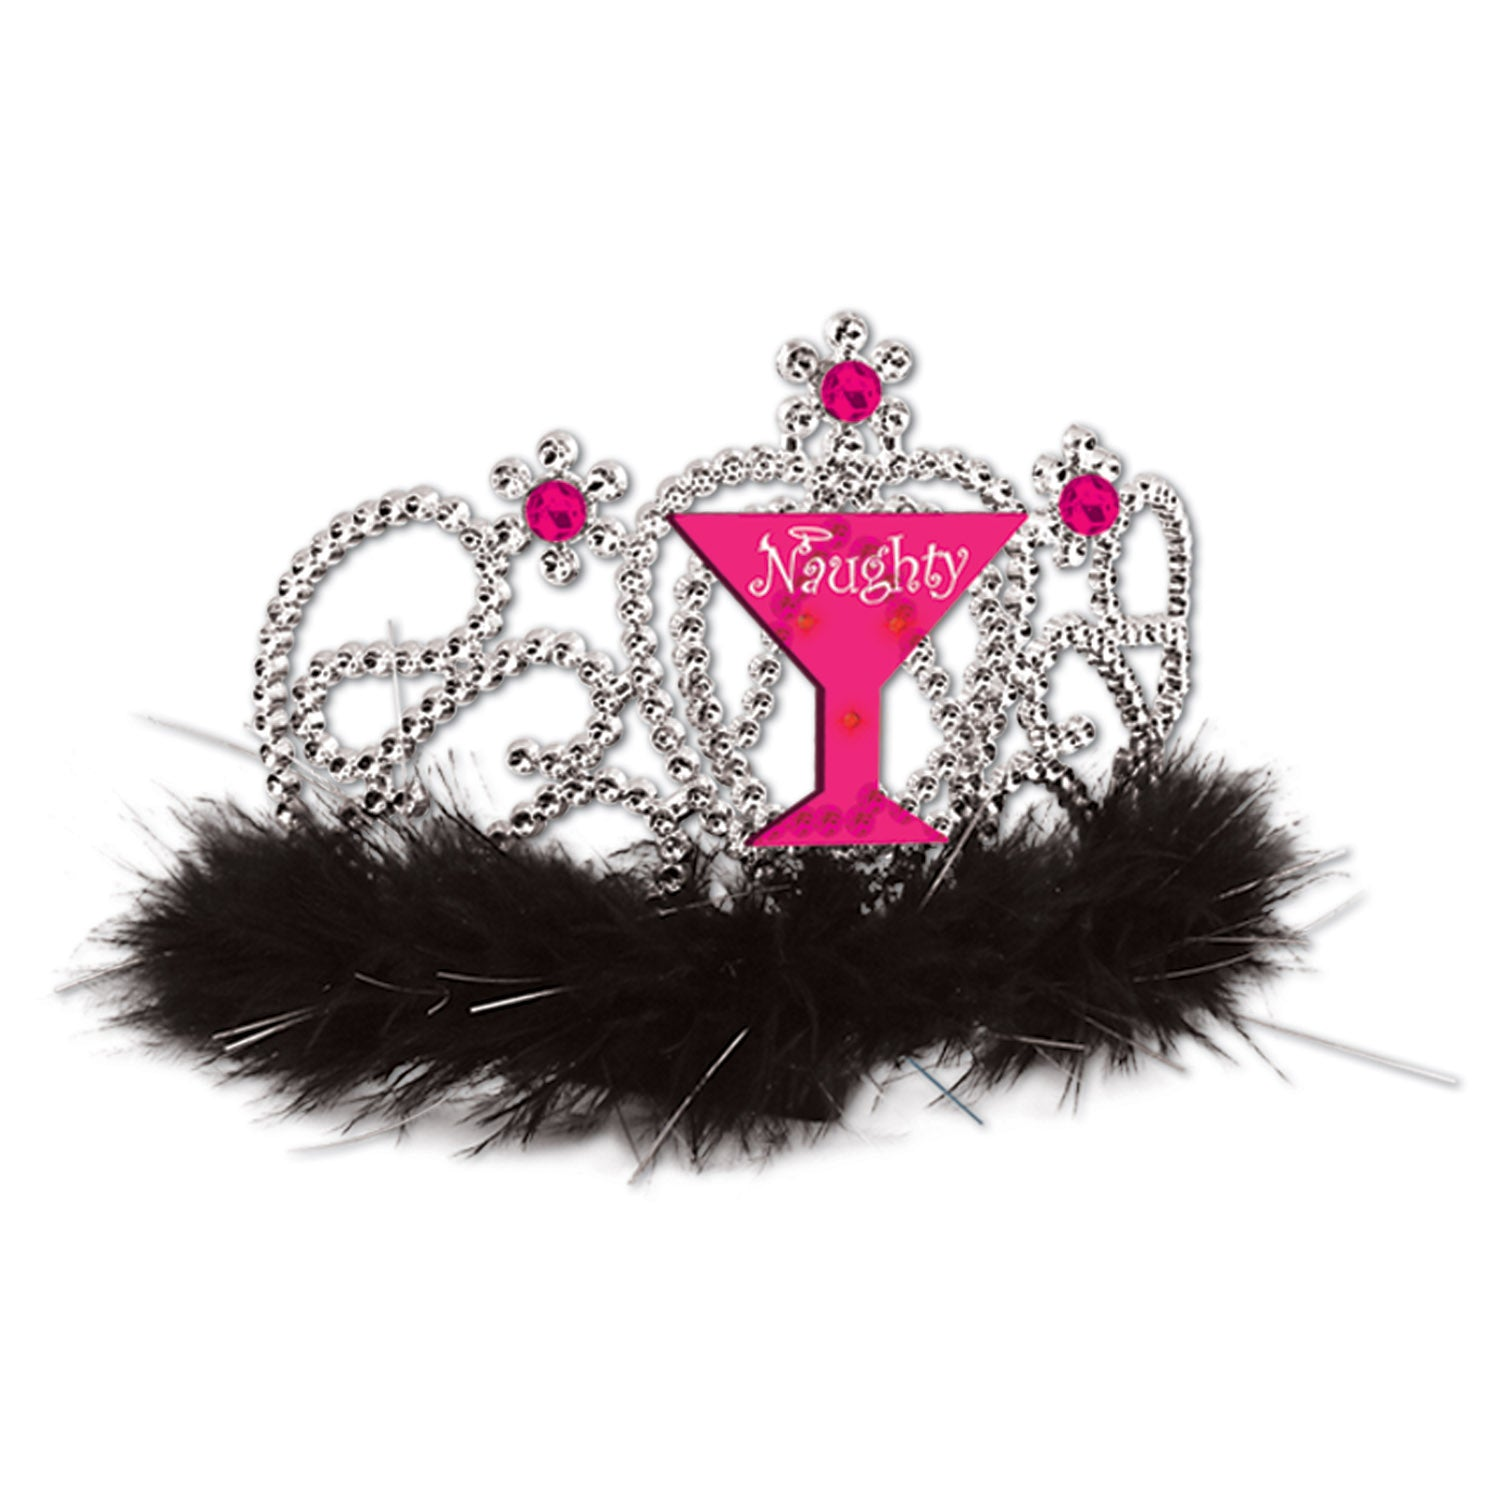 Plastic Light-Up Naughty Girl Tiara by Beistle - Bachelorette Theme Decorations